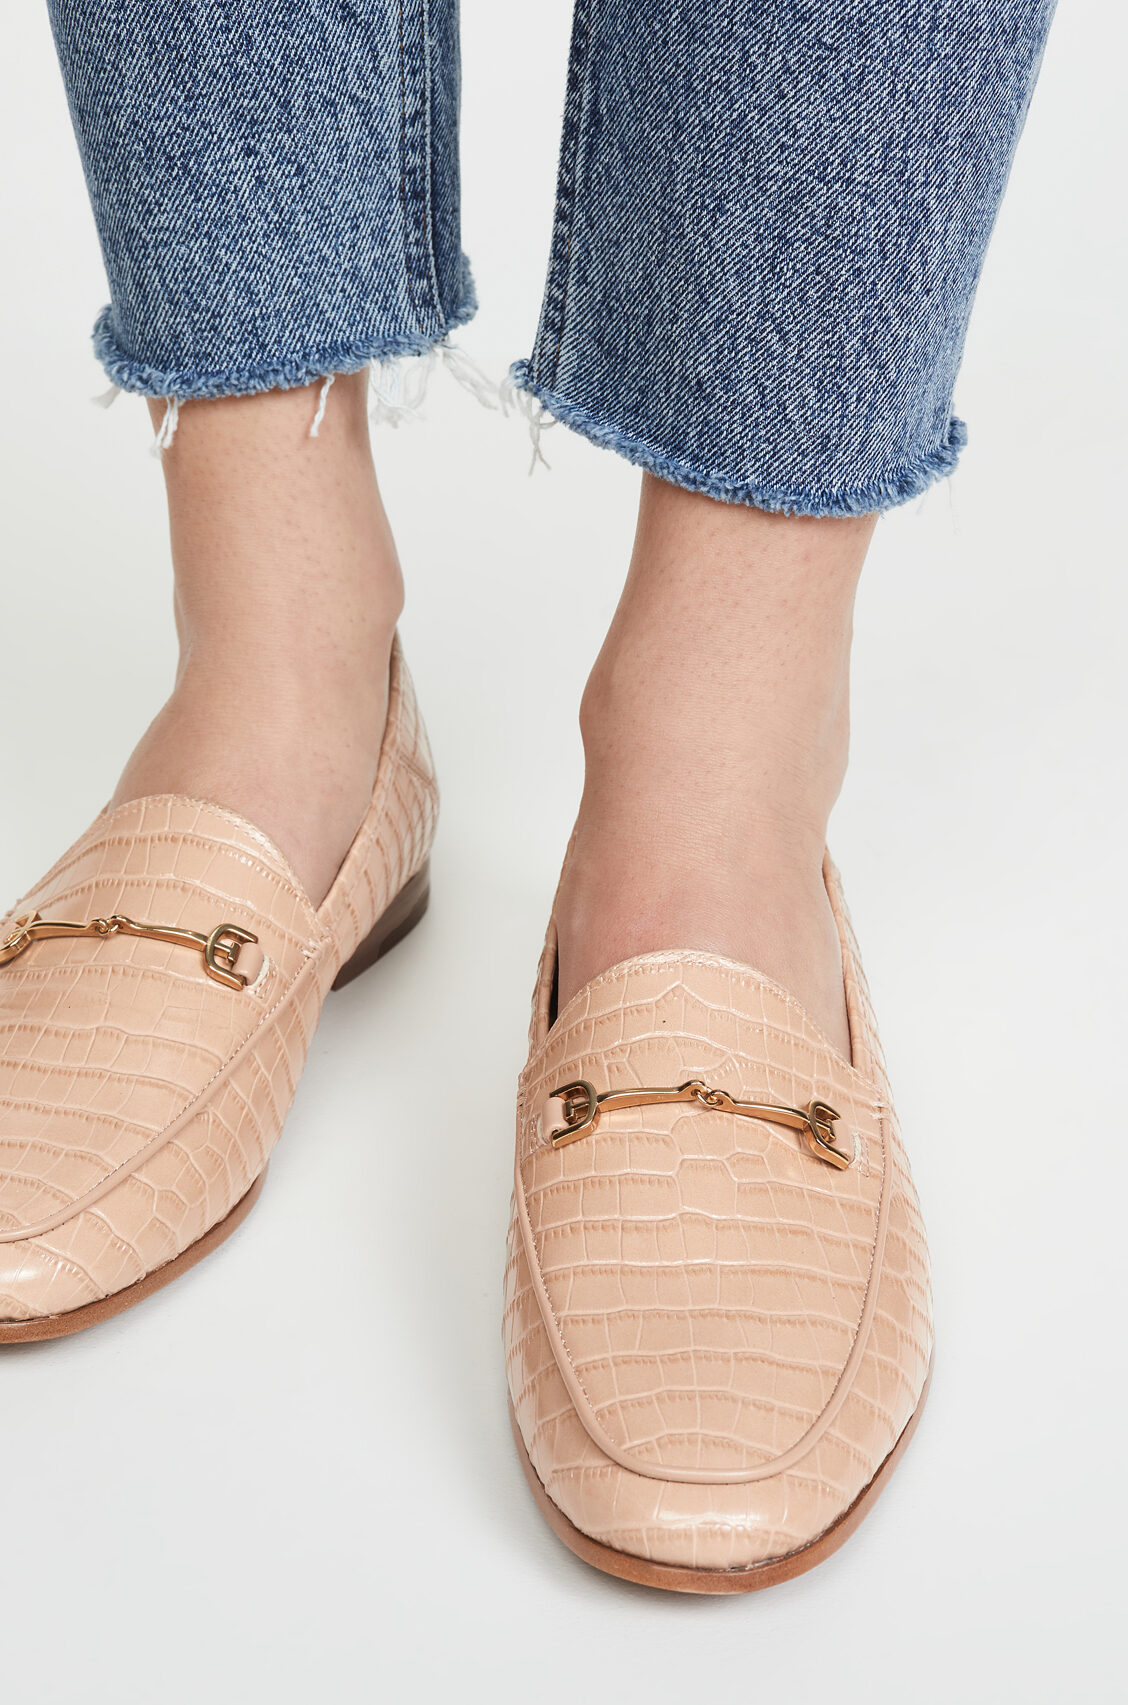 The Shopbop Spring Event + Sam Edelman Loraine Loafers